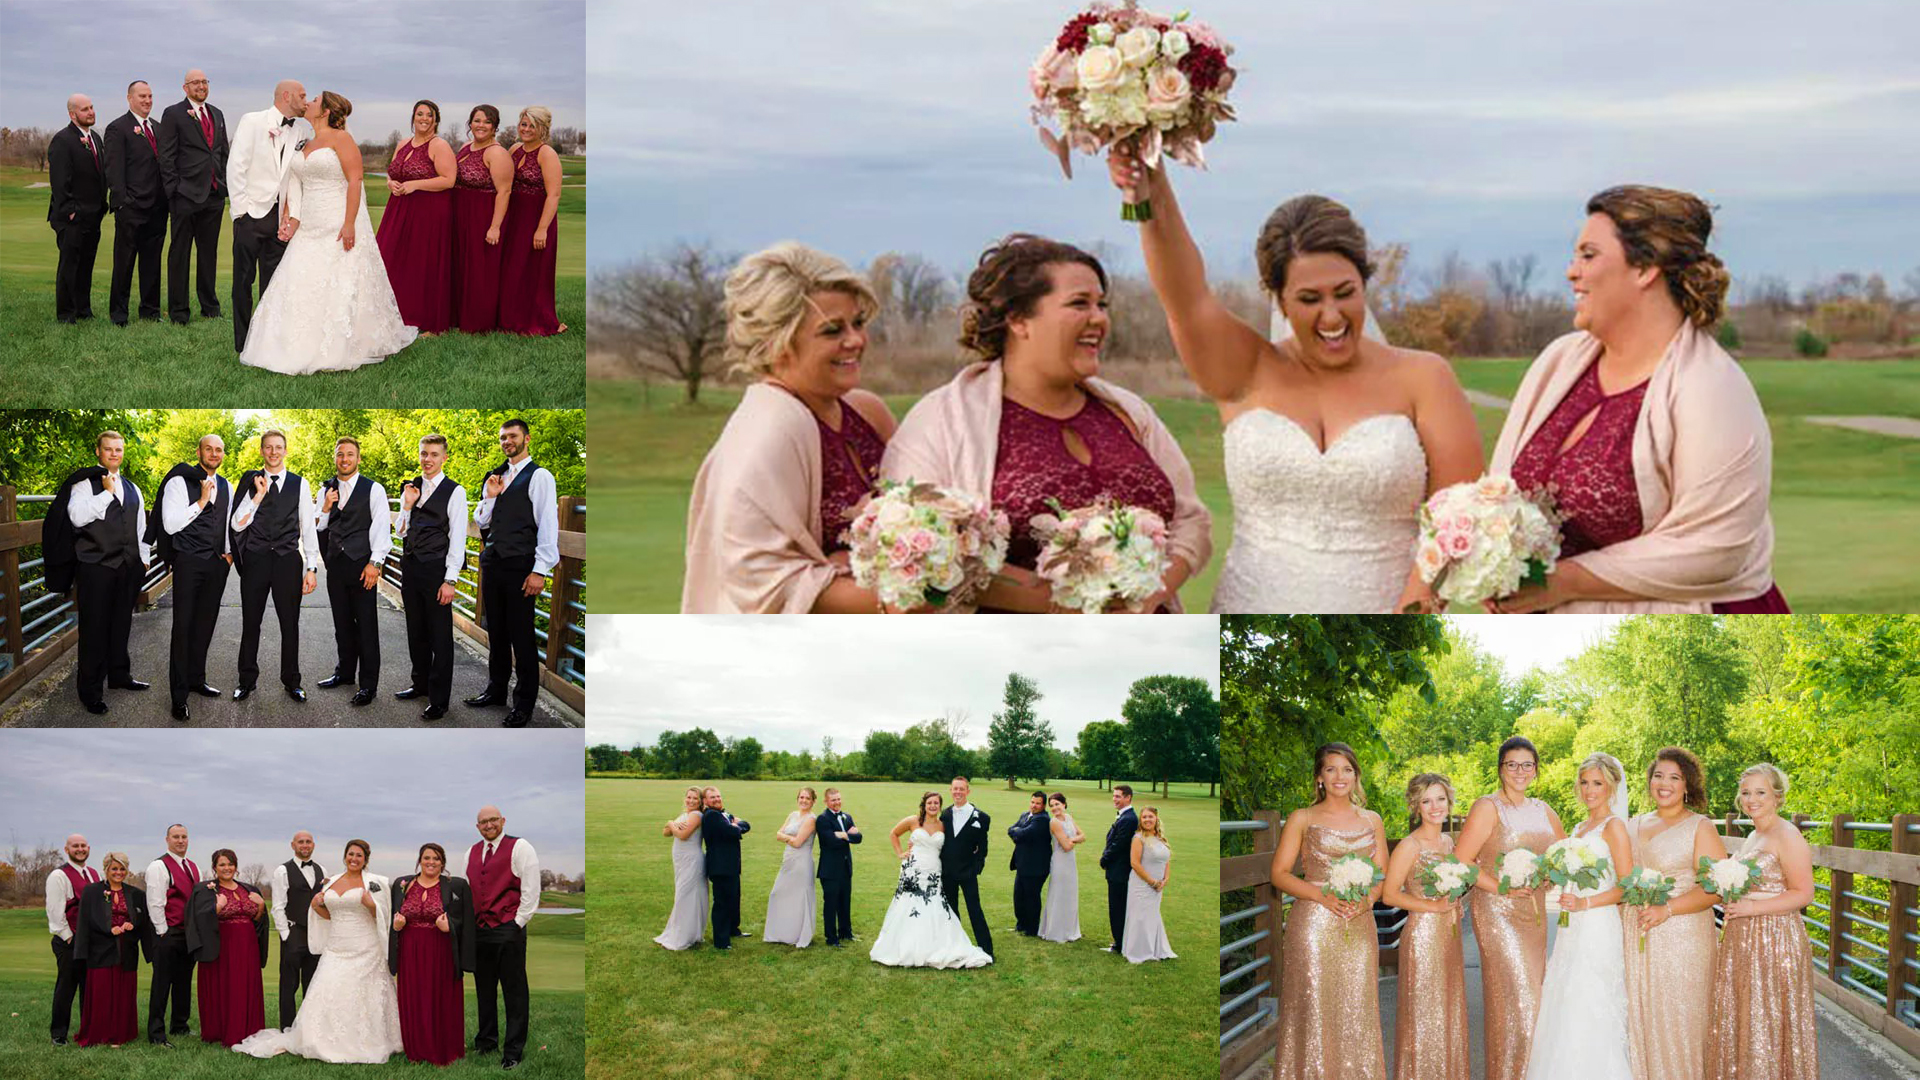 How To Improve Wedding Party Photography – Wedding Party Posing Dos and Don'ts